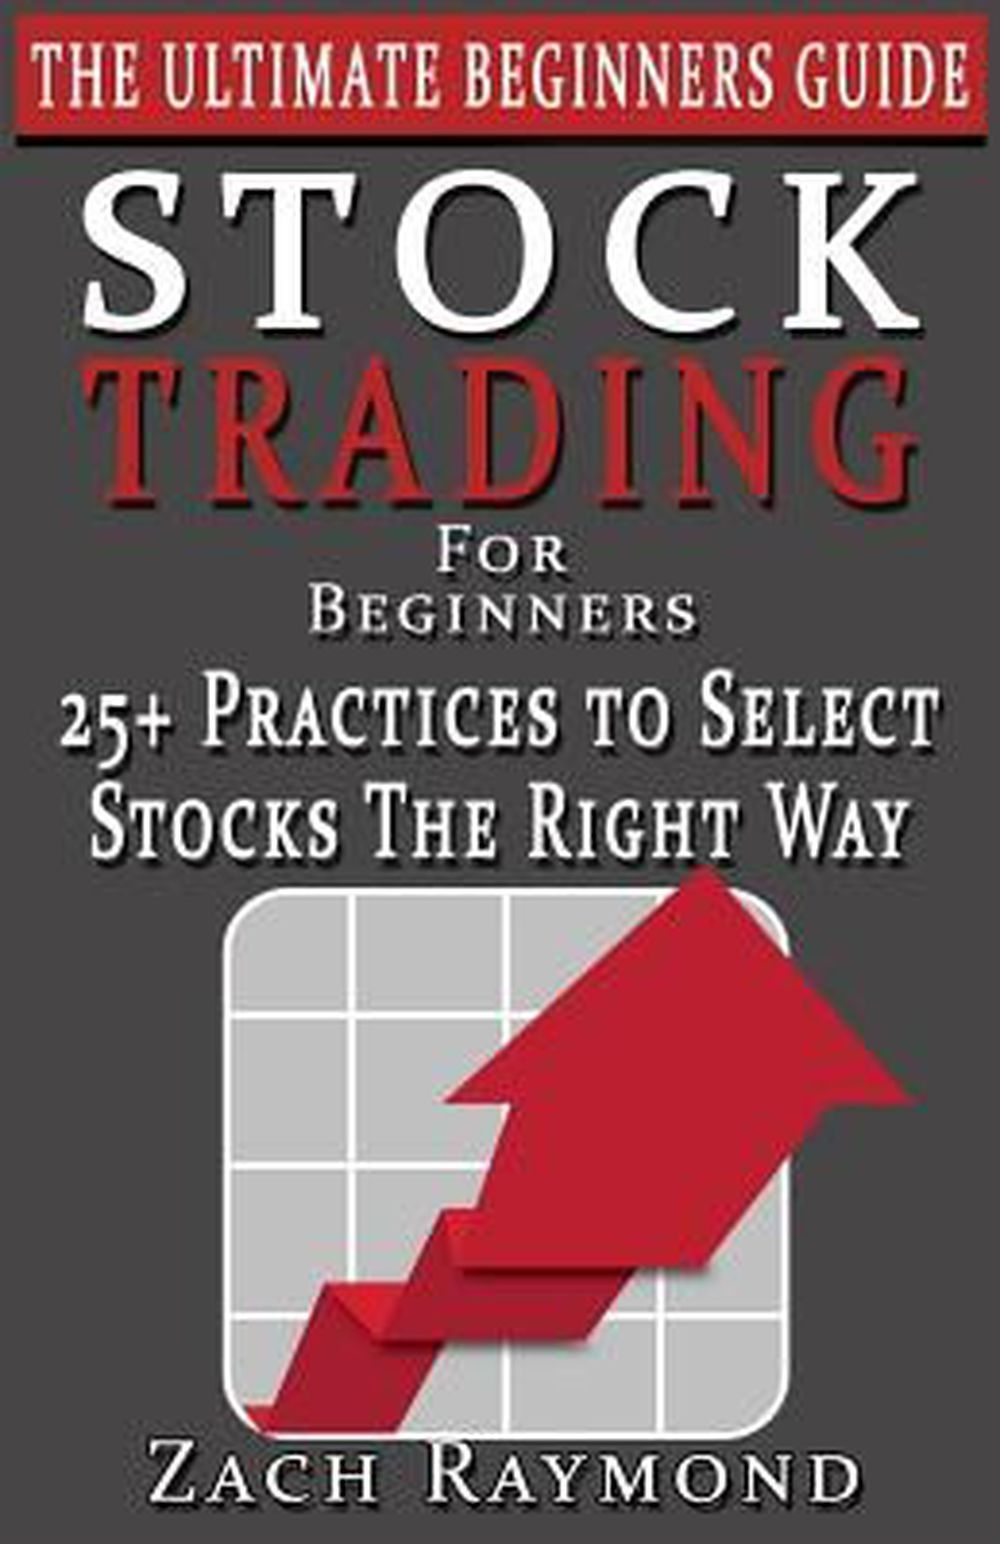 Stocks: Stock Trading for Beginners: The Ultimate Beginner's Guide – 25+ Ways to